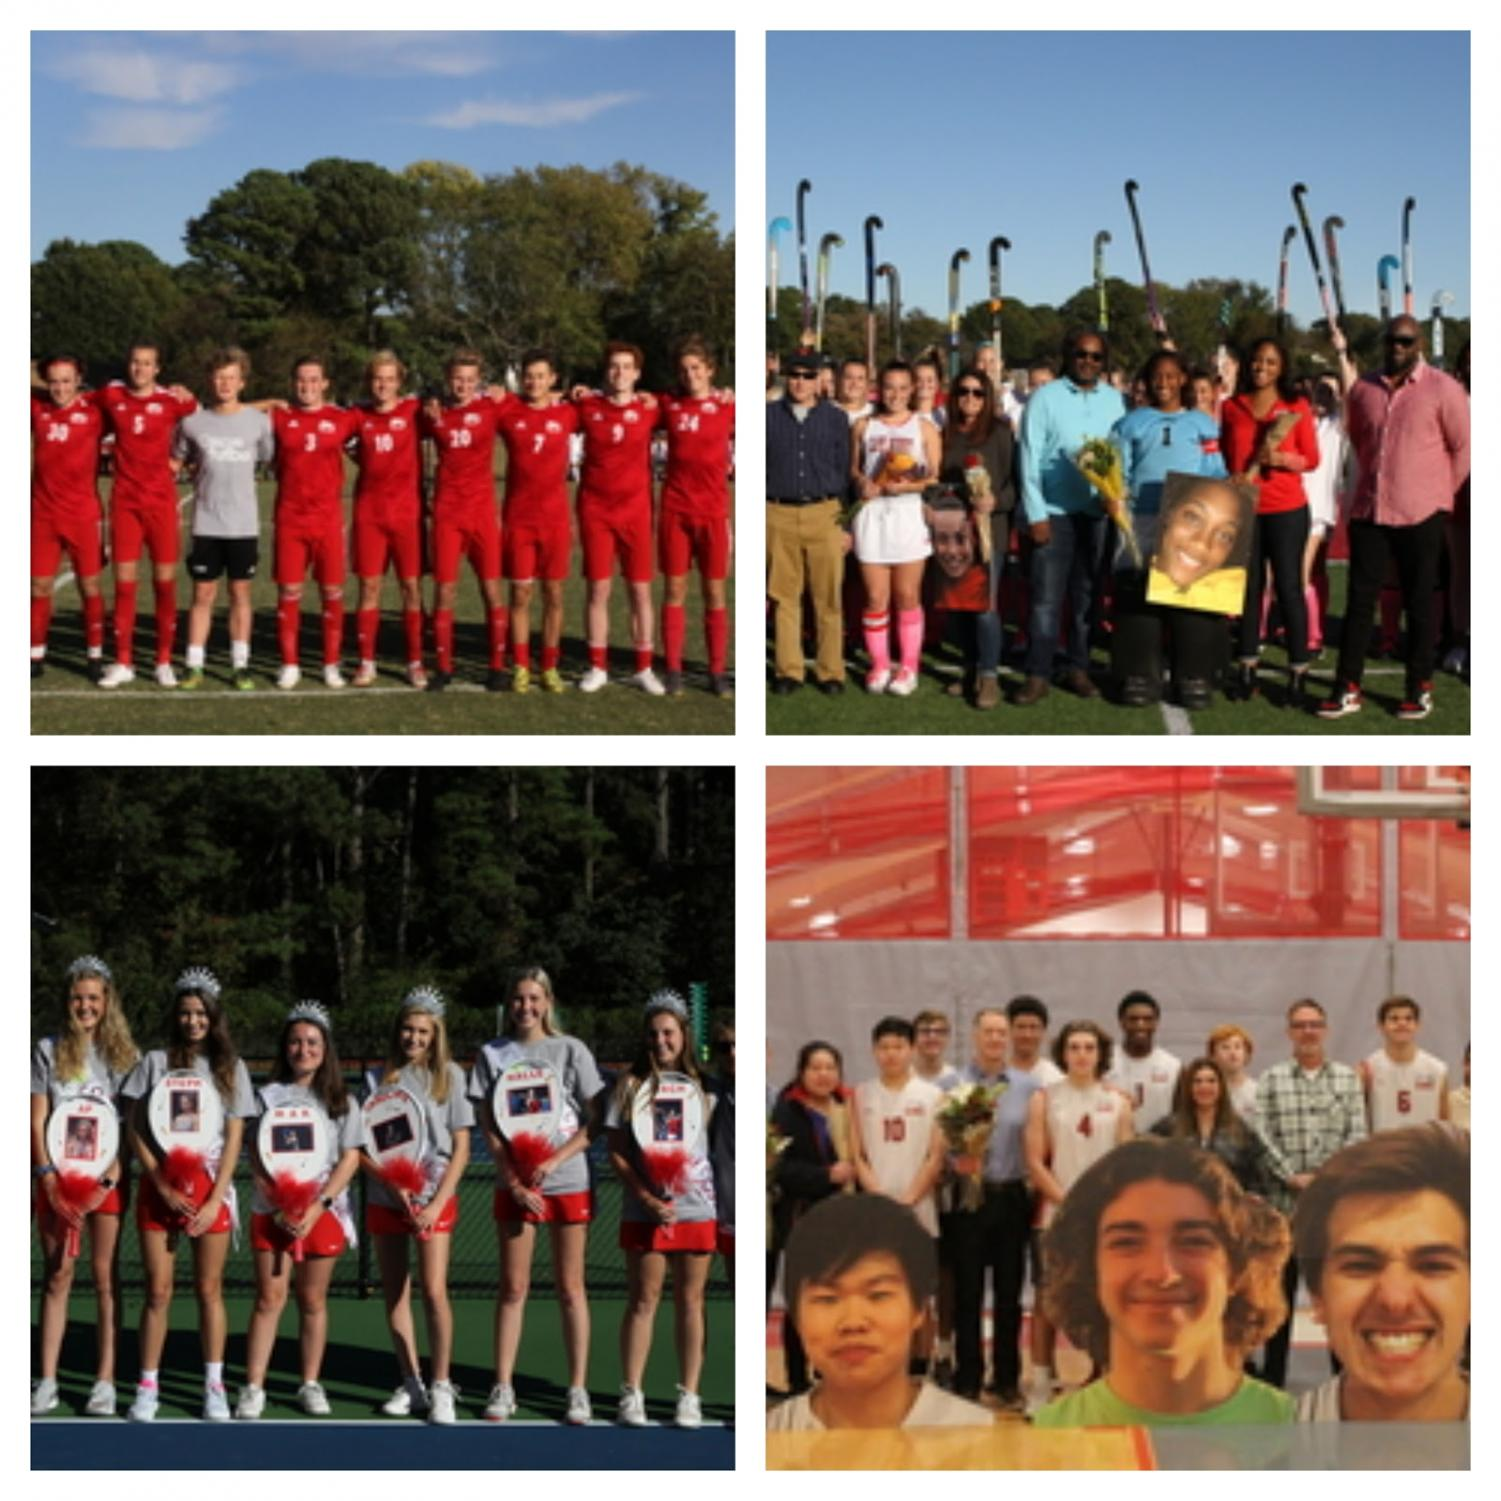 RED+%26+WHITE+OUT+-+The+Boys+Varsity+soccer+team%2C+Girls+Varsity+tennis%2C+Girls+Varsity+Field+Hockey%2C+and+Boys+Varsity+Volleyball+teams%E2%80%99+seniors+were+a+sea+of+red+and+white.+Photo+Credits%3A++Mr.+Daniel+Burke